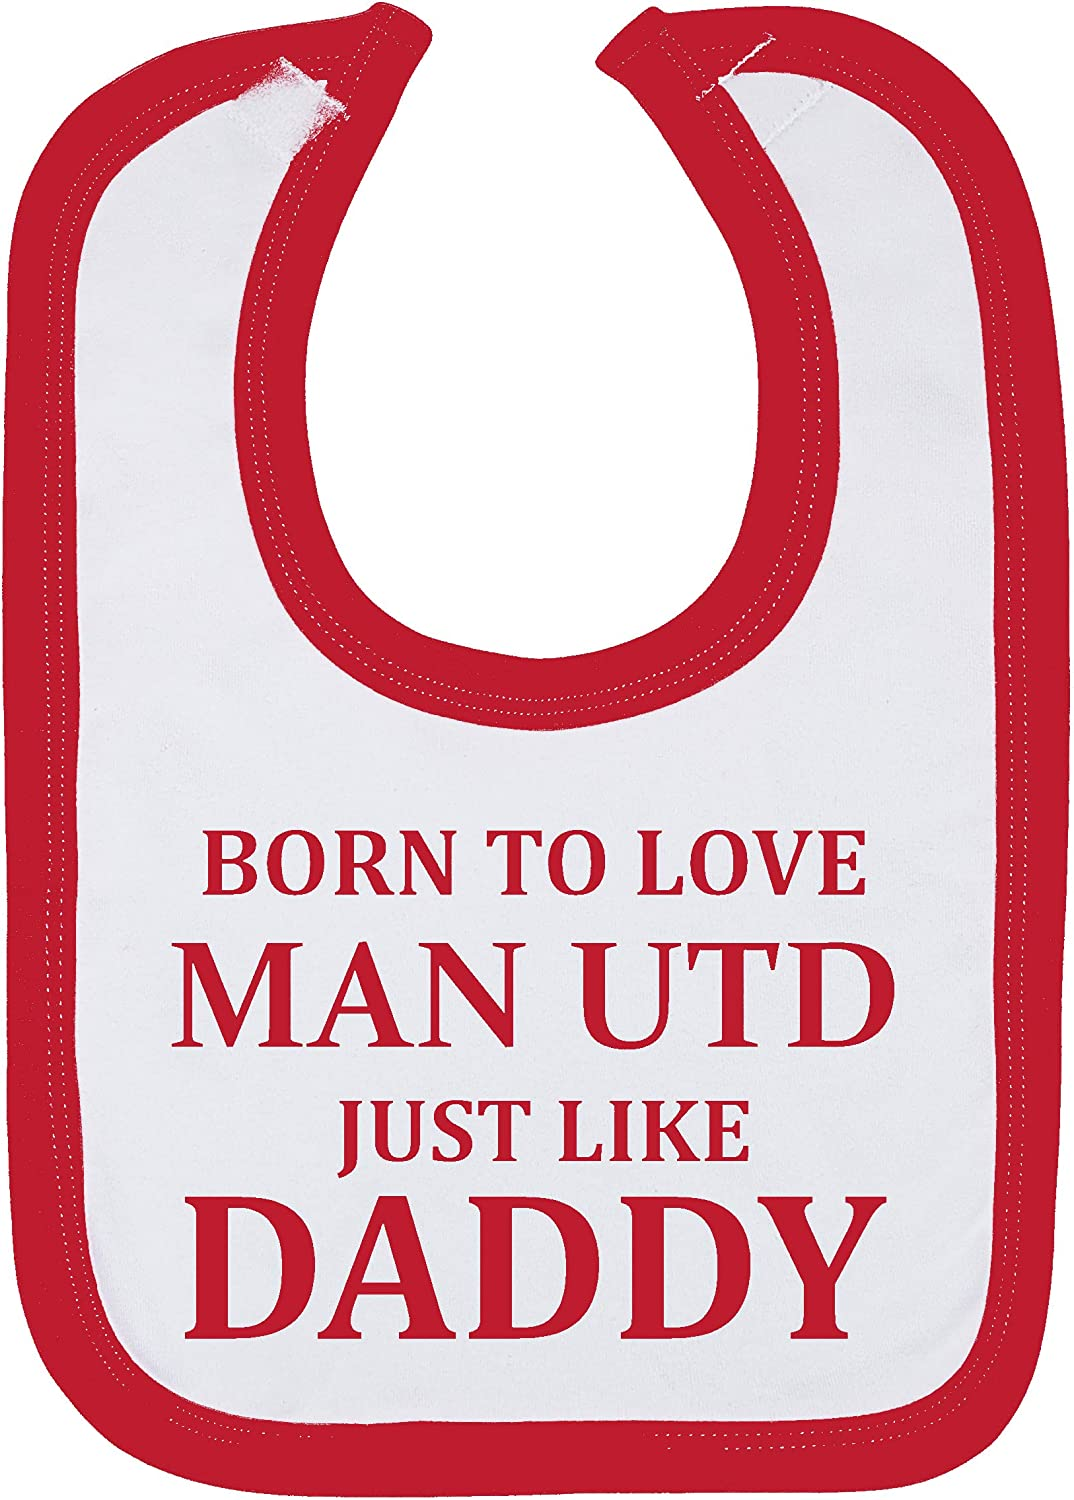 Born To Love Man Utd Just Like Daddy Baby Boy Girl Bibs Made in the UK Using 100/% Fine Combed Cotton